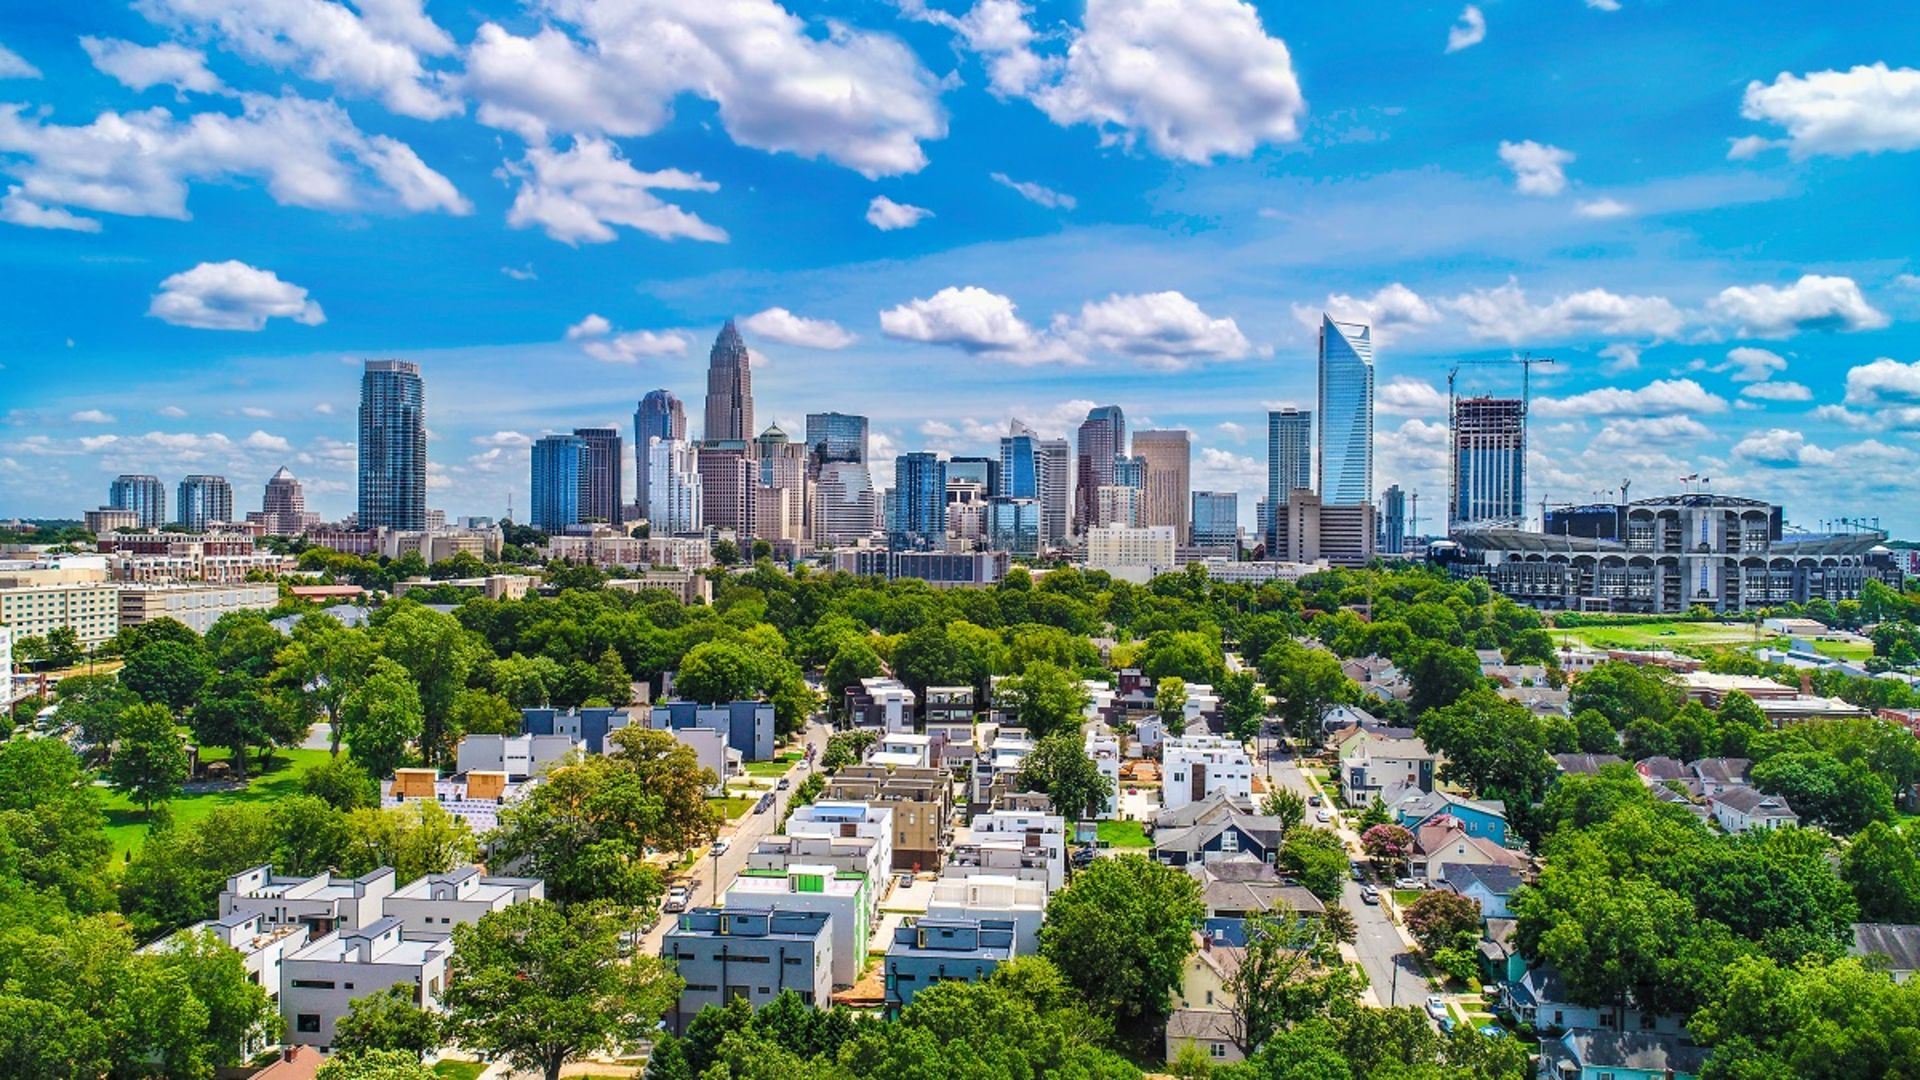 Charlotte Real Estate Market Overview – Investment Property Market Predictions for 2019